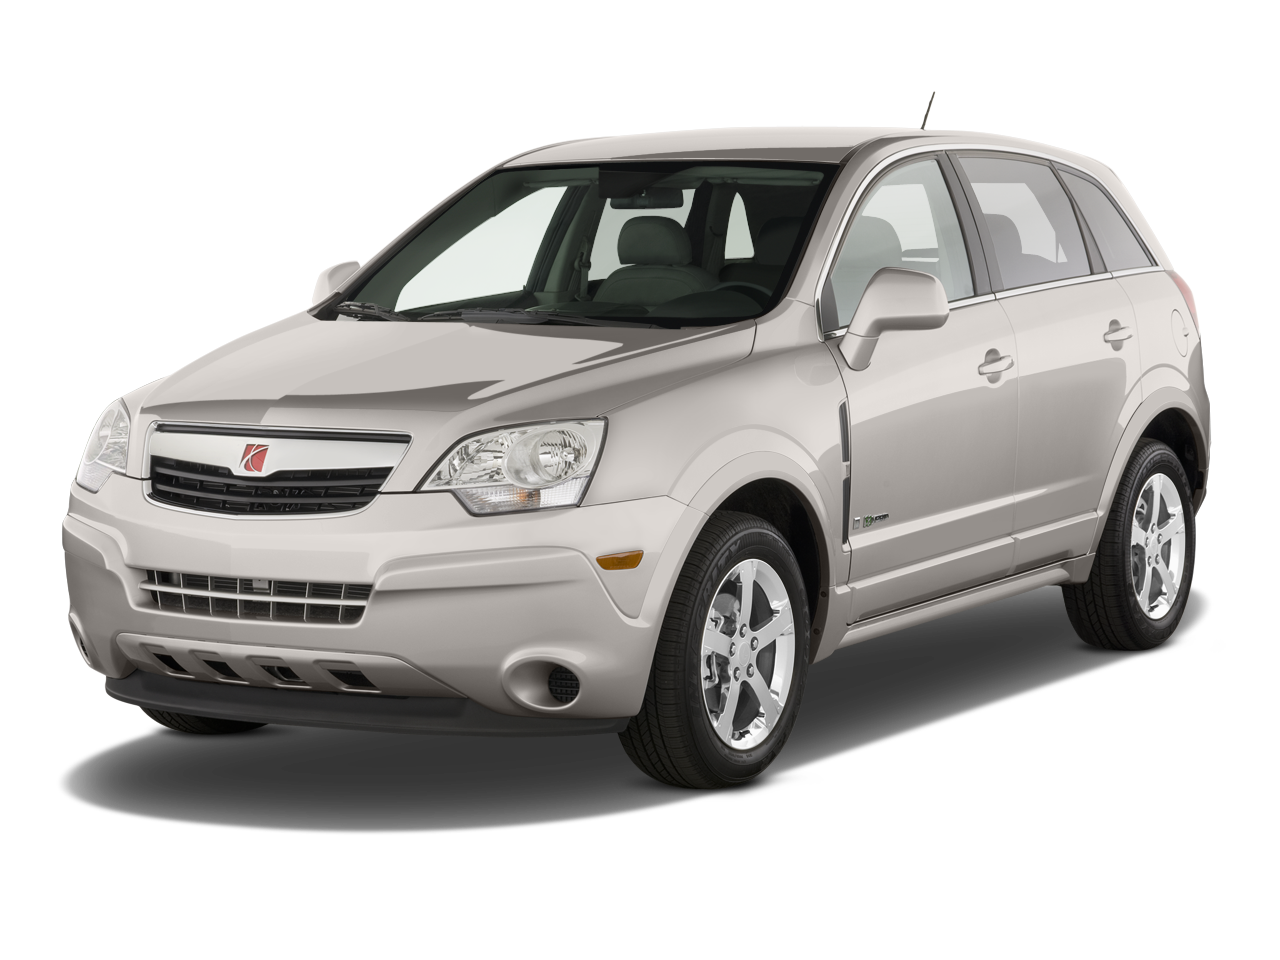 Cheap Cars Nj >> Saturn ION Reviews: Research New & Used Models | Motor Trend